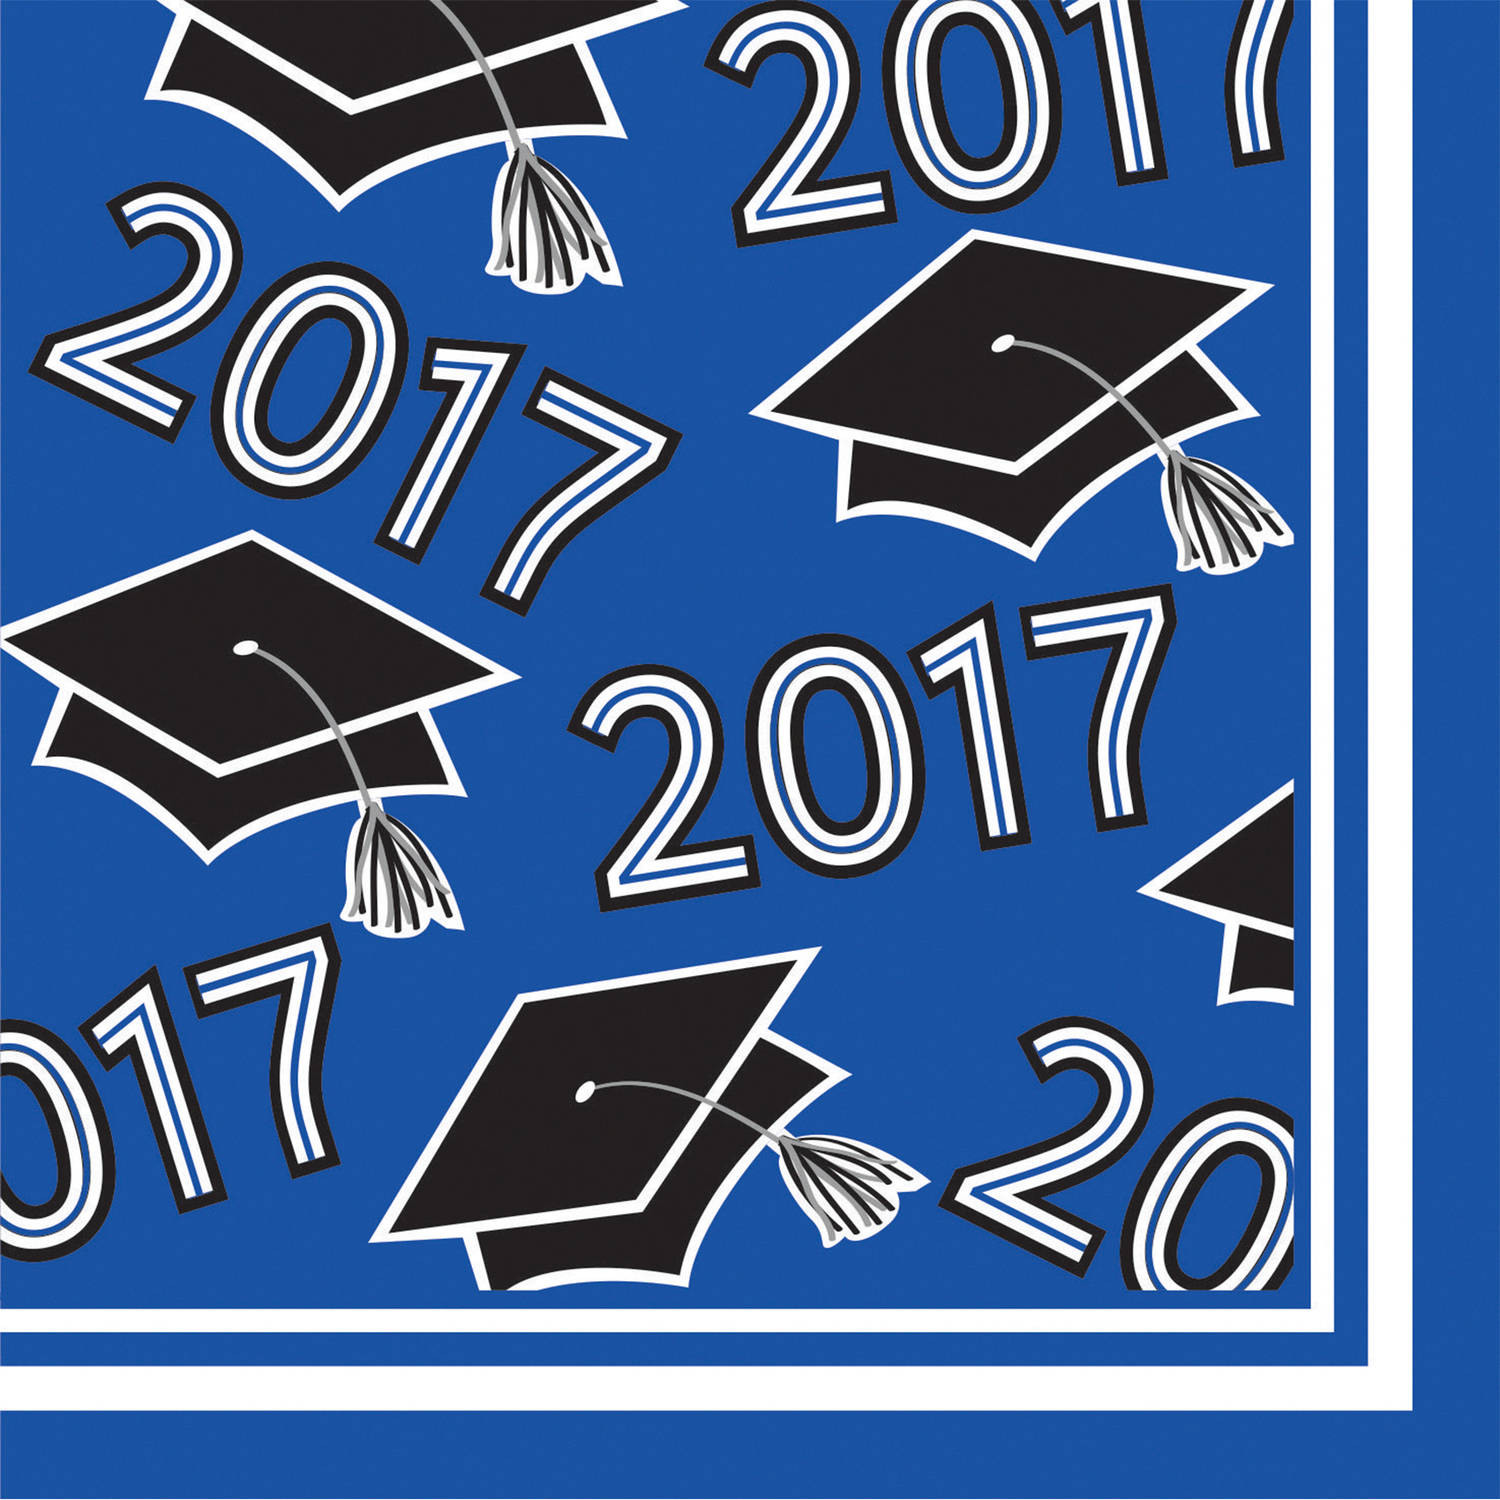 Class of 2017 Cobalt Blue Beverage Napkins, 36pk by